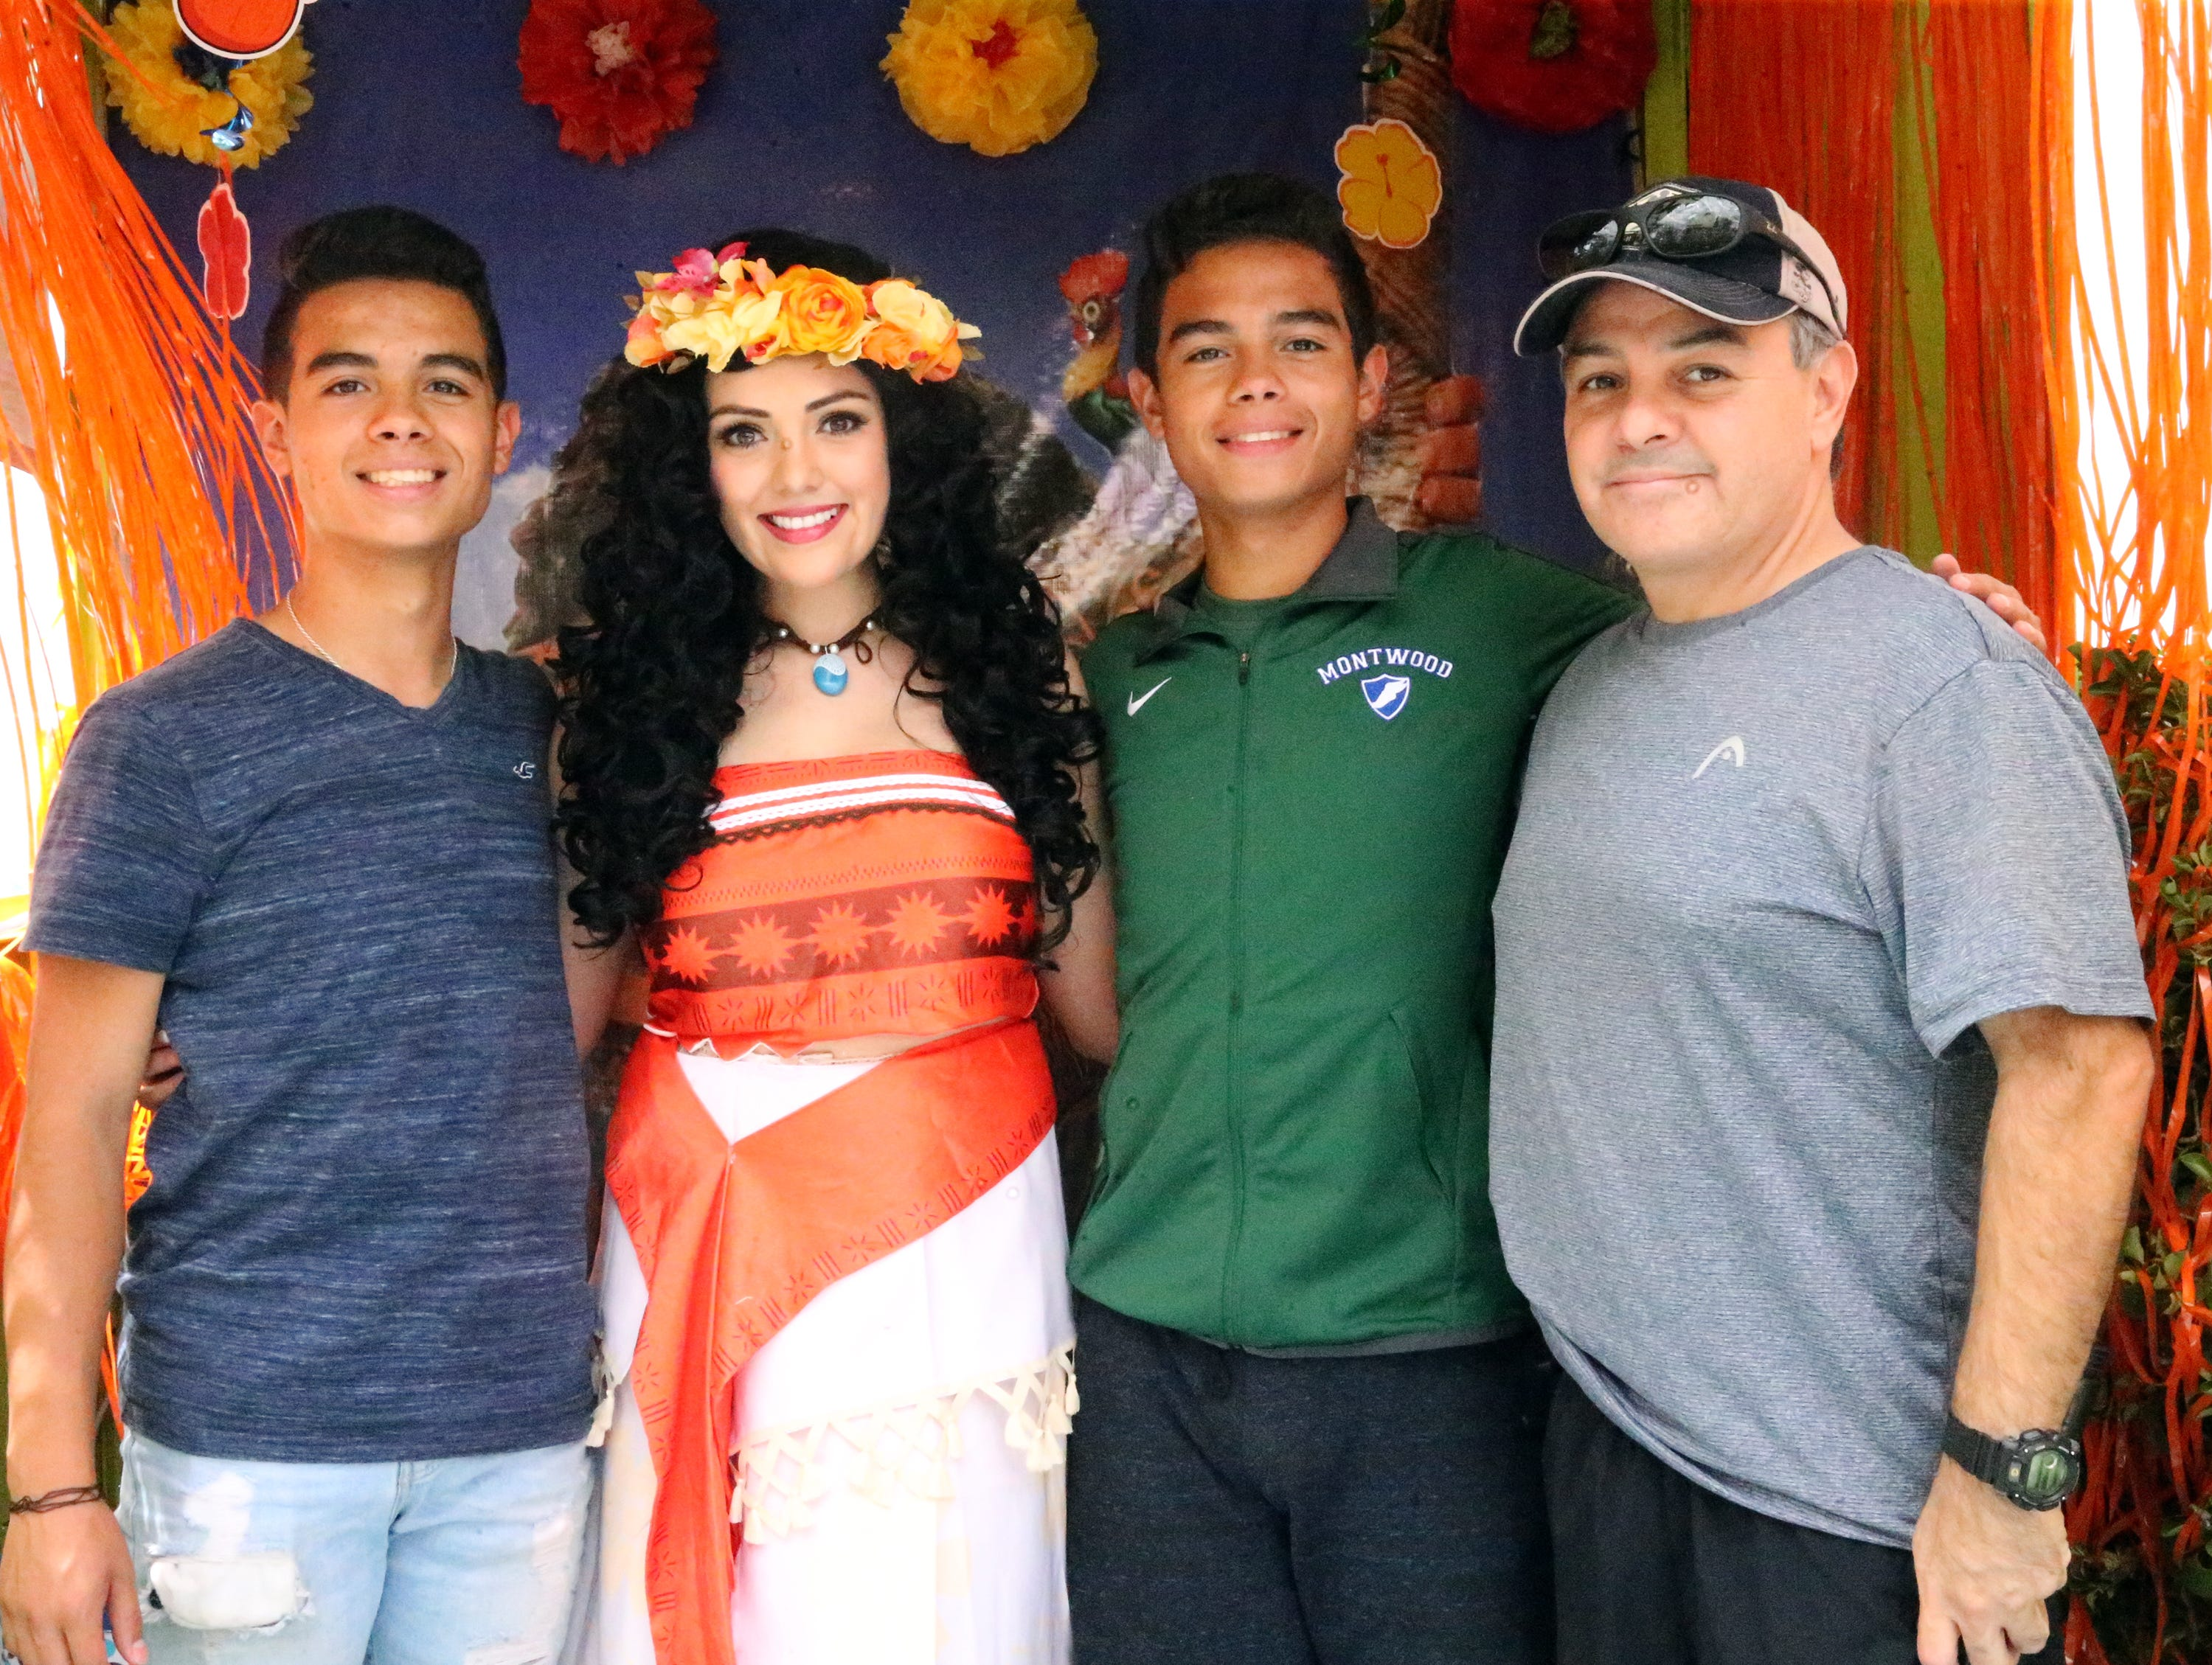 Izak Jimenez, left, his twin brother Juan Jimenez and their father, Juan Jimenez pose for a photo with Veronica Varela at the Princess Moana makeovers booth Saturday.